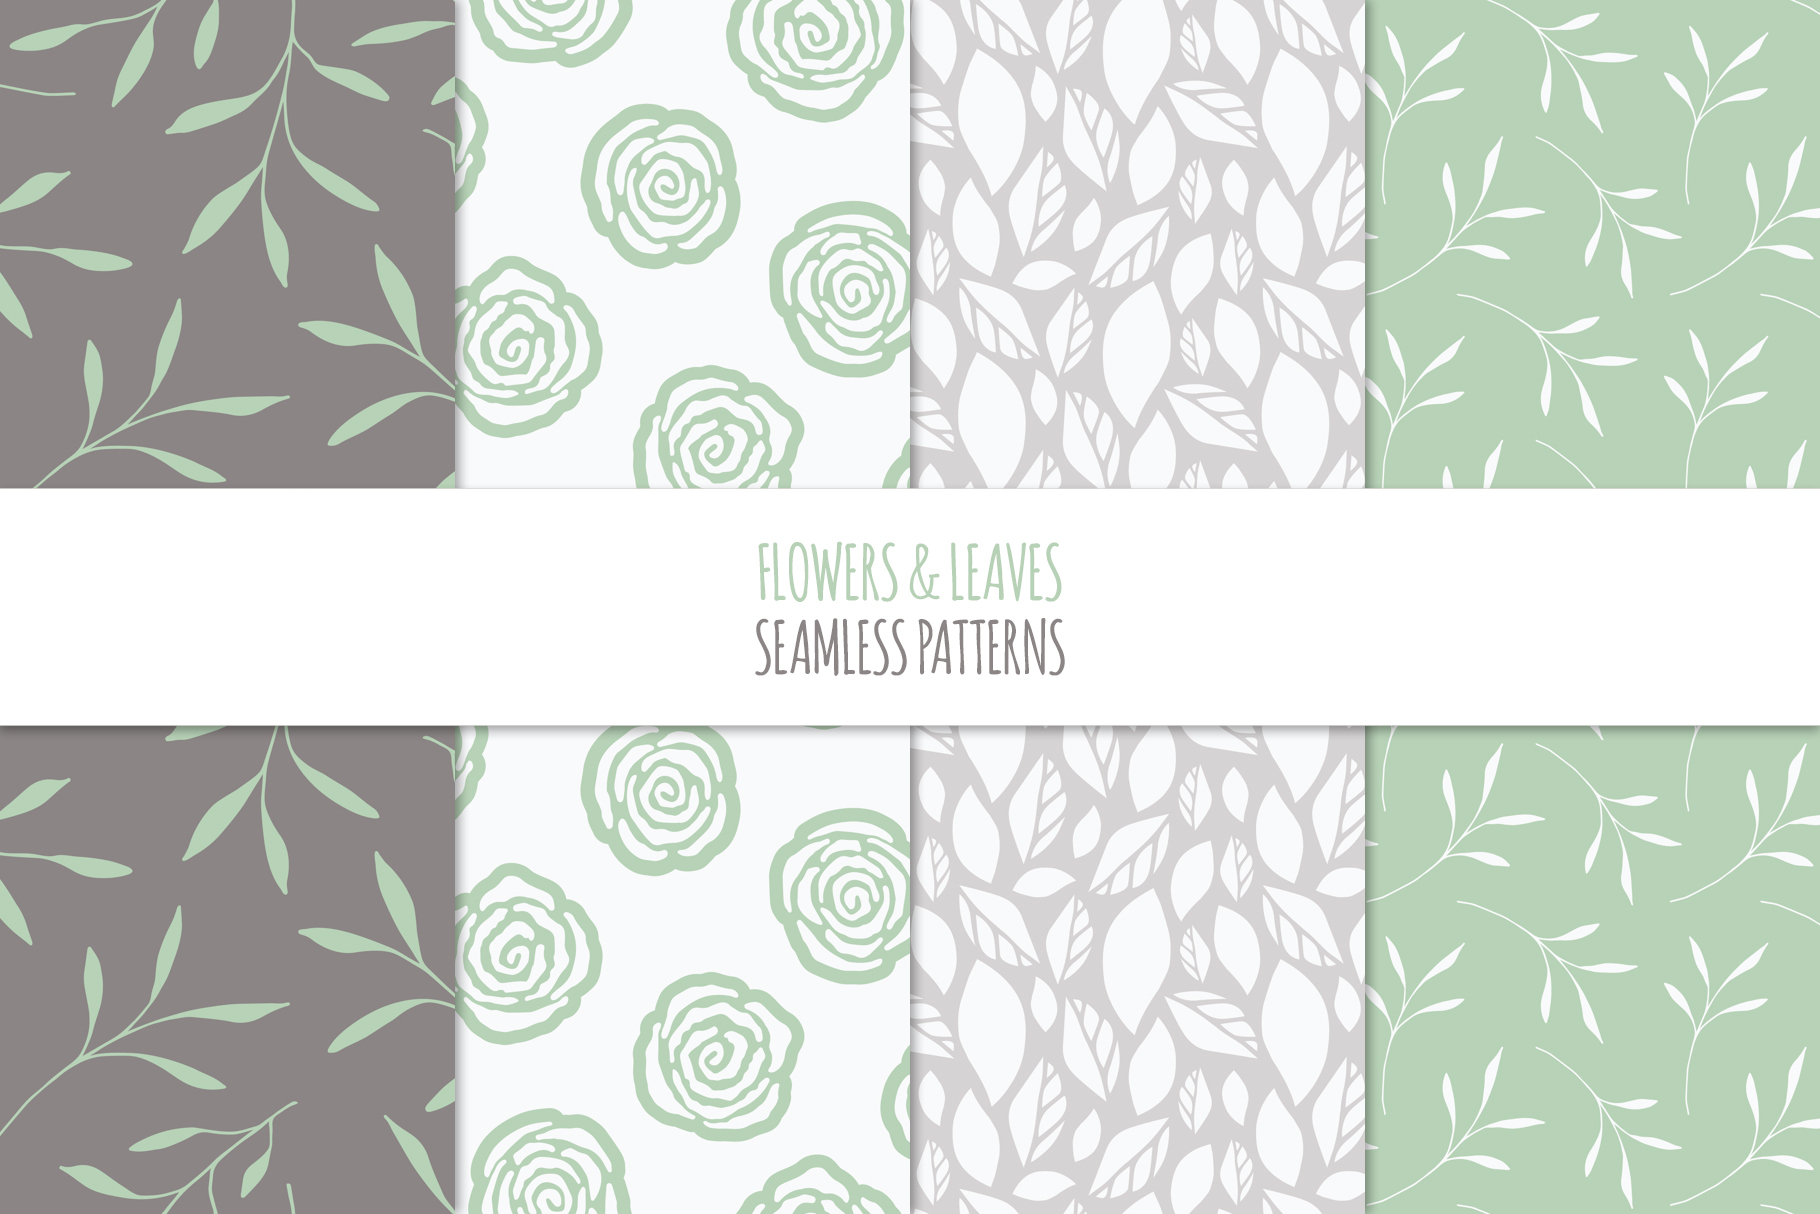 Floral Seamless Patterns - Green example image 4